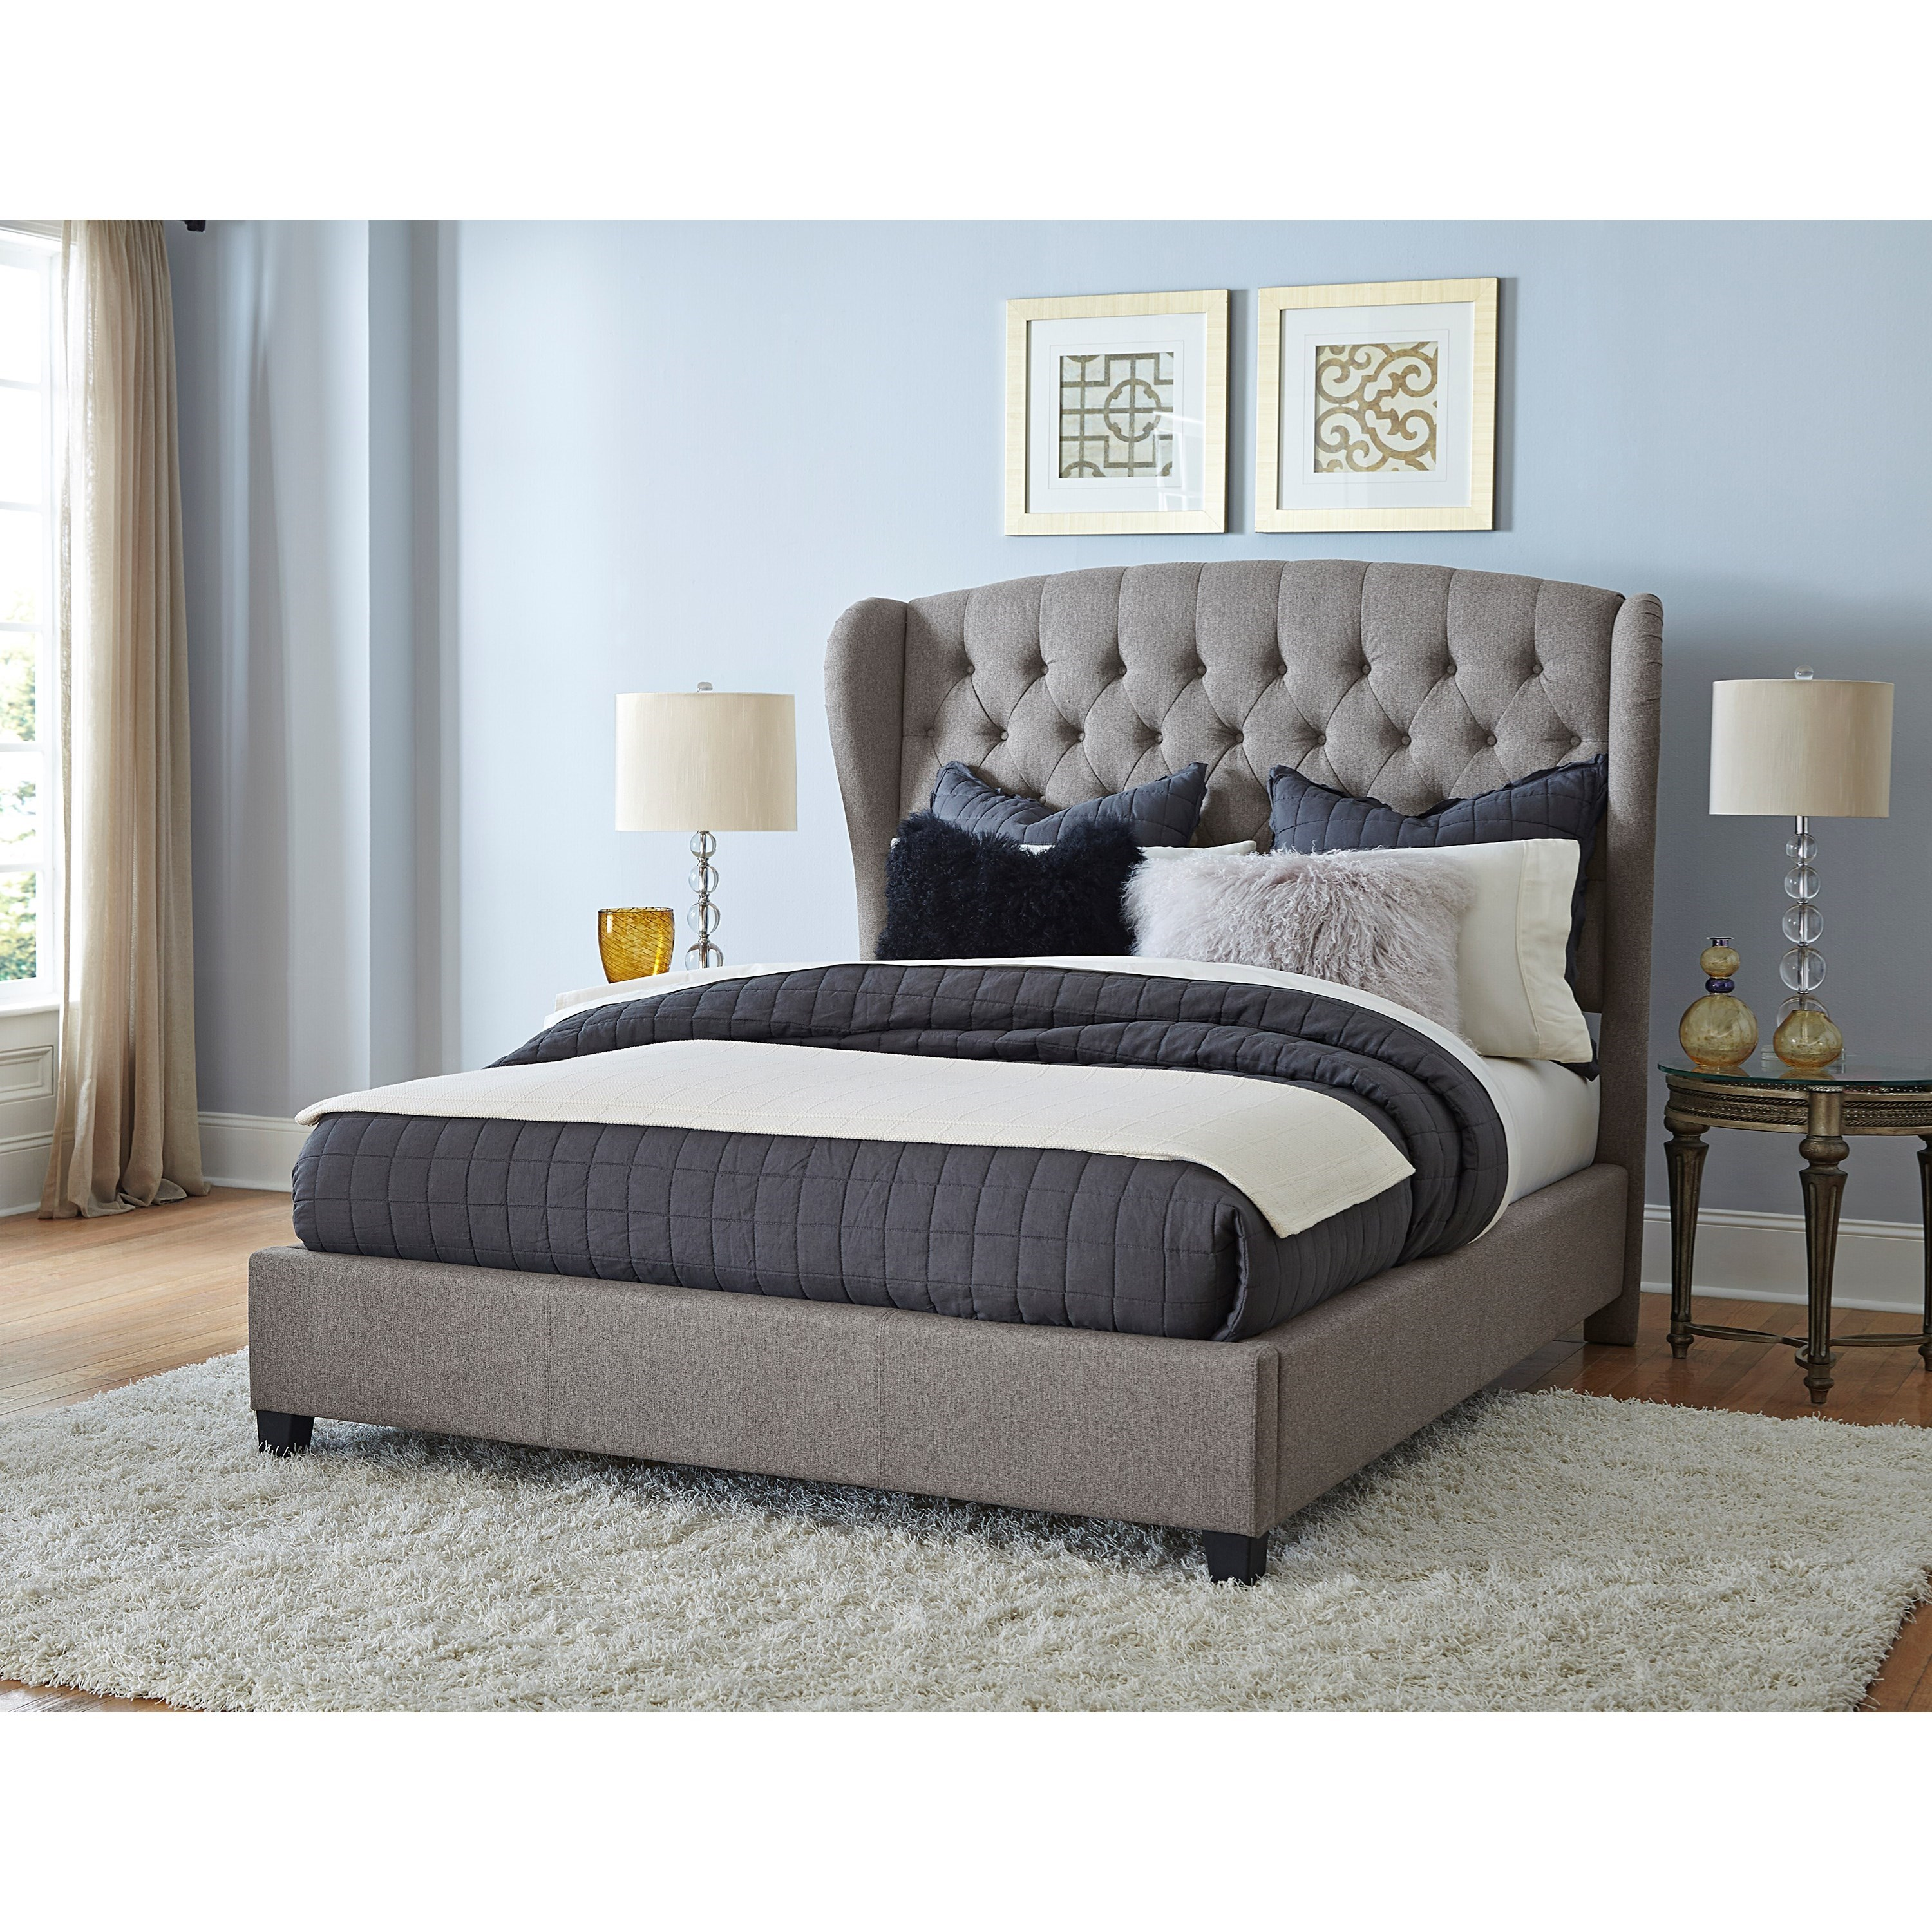 Hillsdale Upholstered Beds Upholstered Queen Bed Set With Wingback Headboard Westrich Furniture Appliances Upholstered Beds